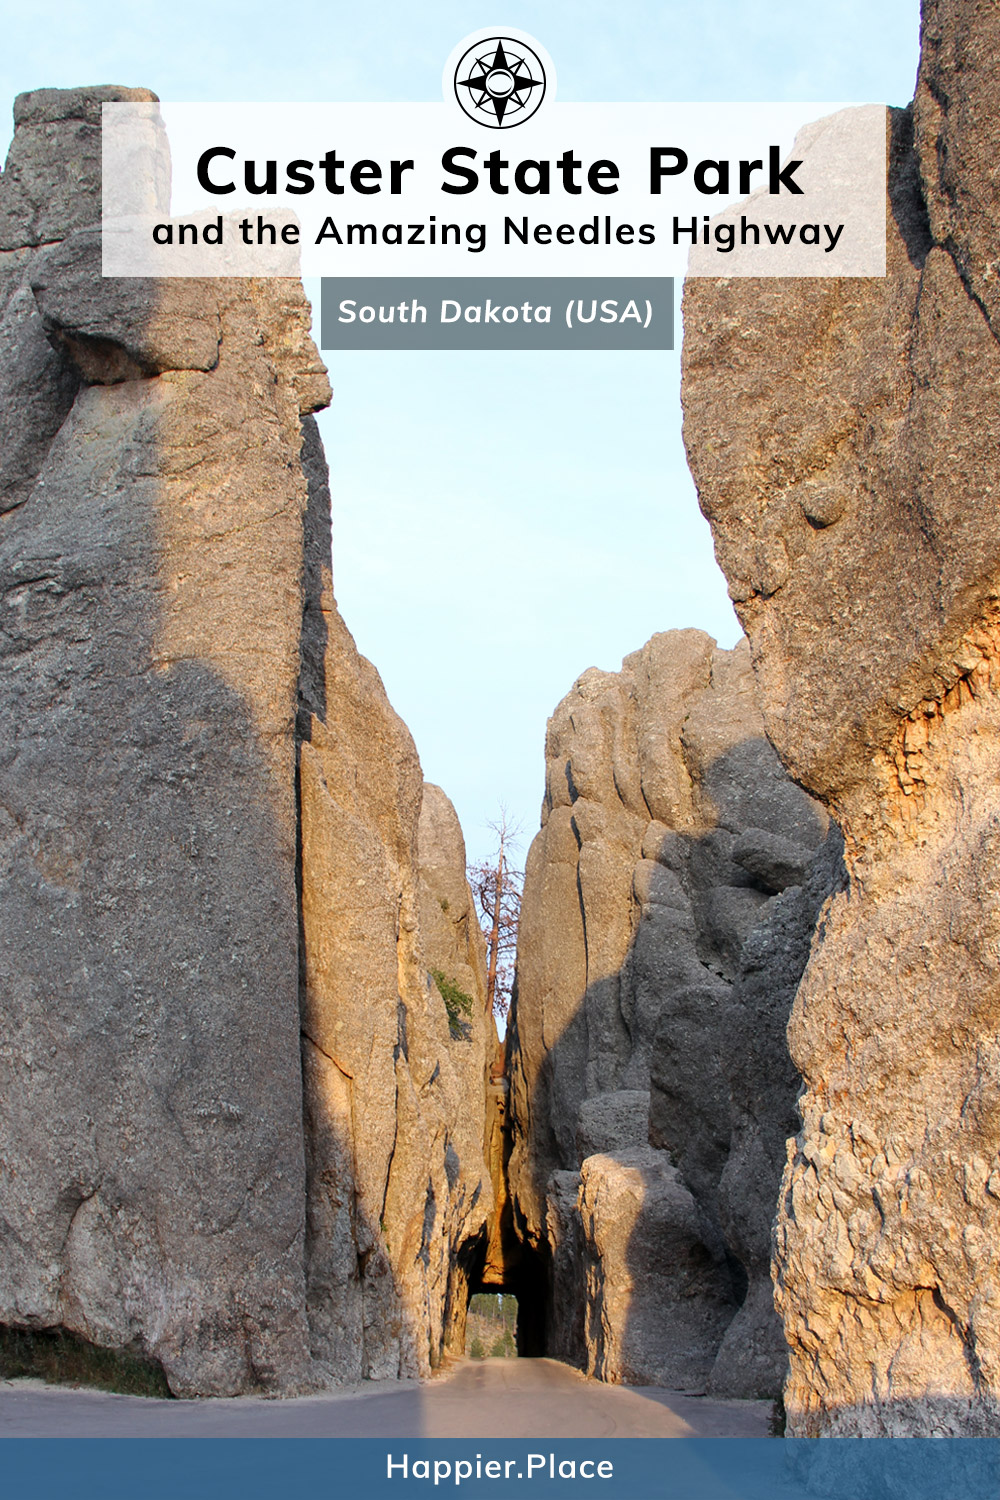 Custer State Park and the amazing Needles Highway, Needle Eye Tunnel, South Dakota, USA